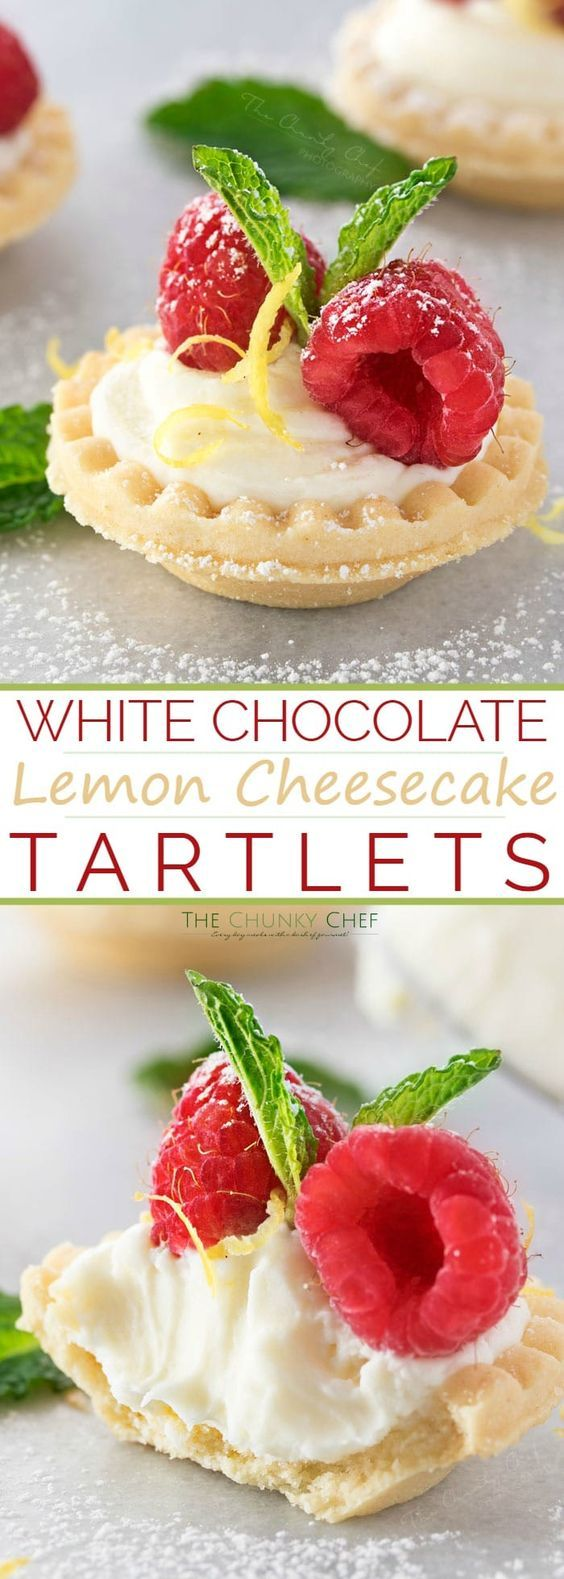 No Bake White Chocolate Lemon Cheesecake Tartlets Recipe